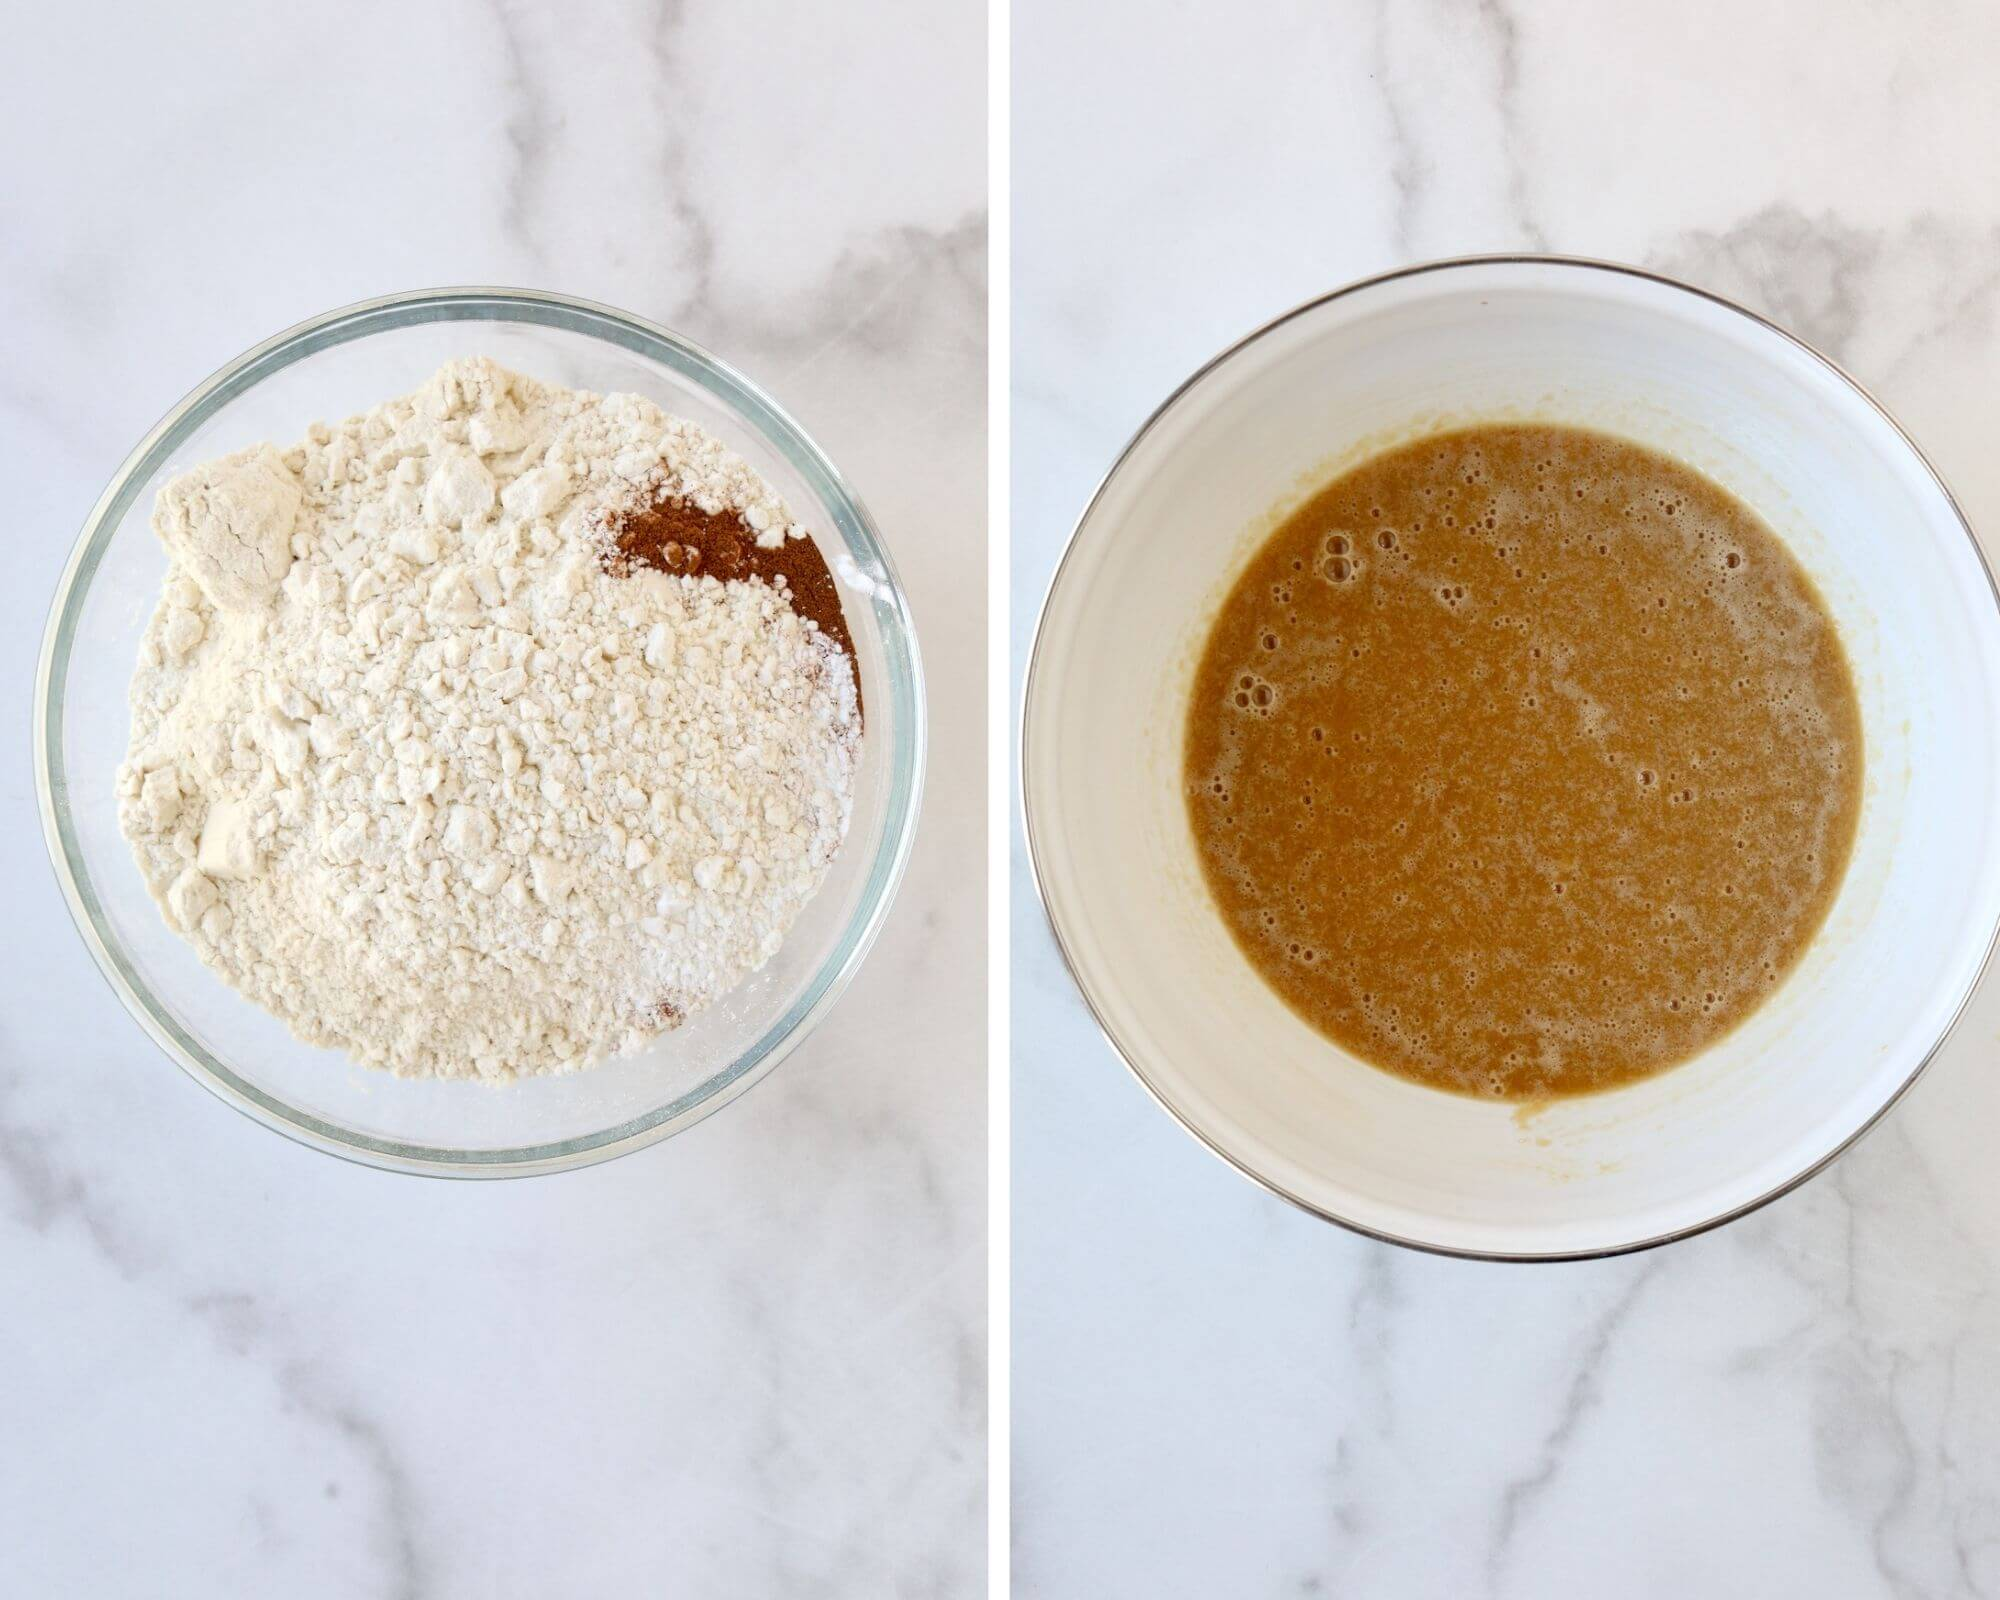 One bowl filled with dry ingredients next to a bowl with mixed wet ingredients.